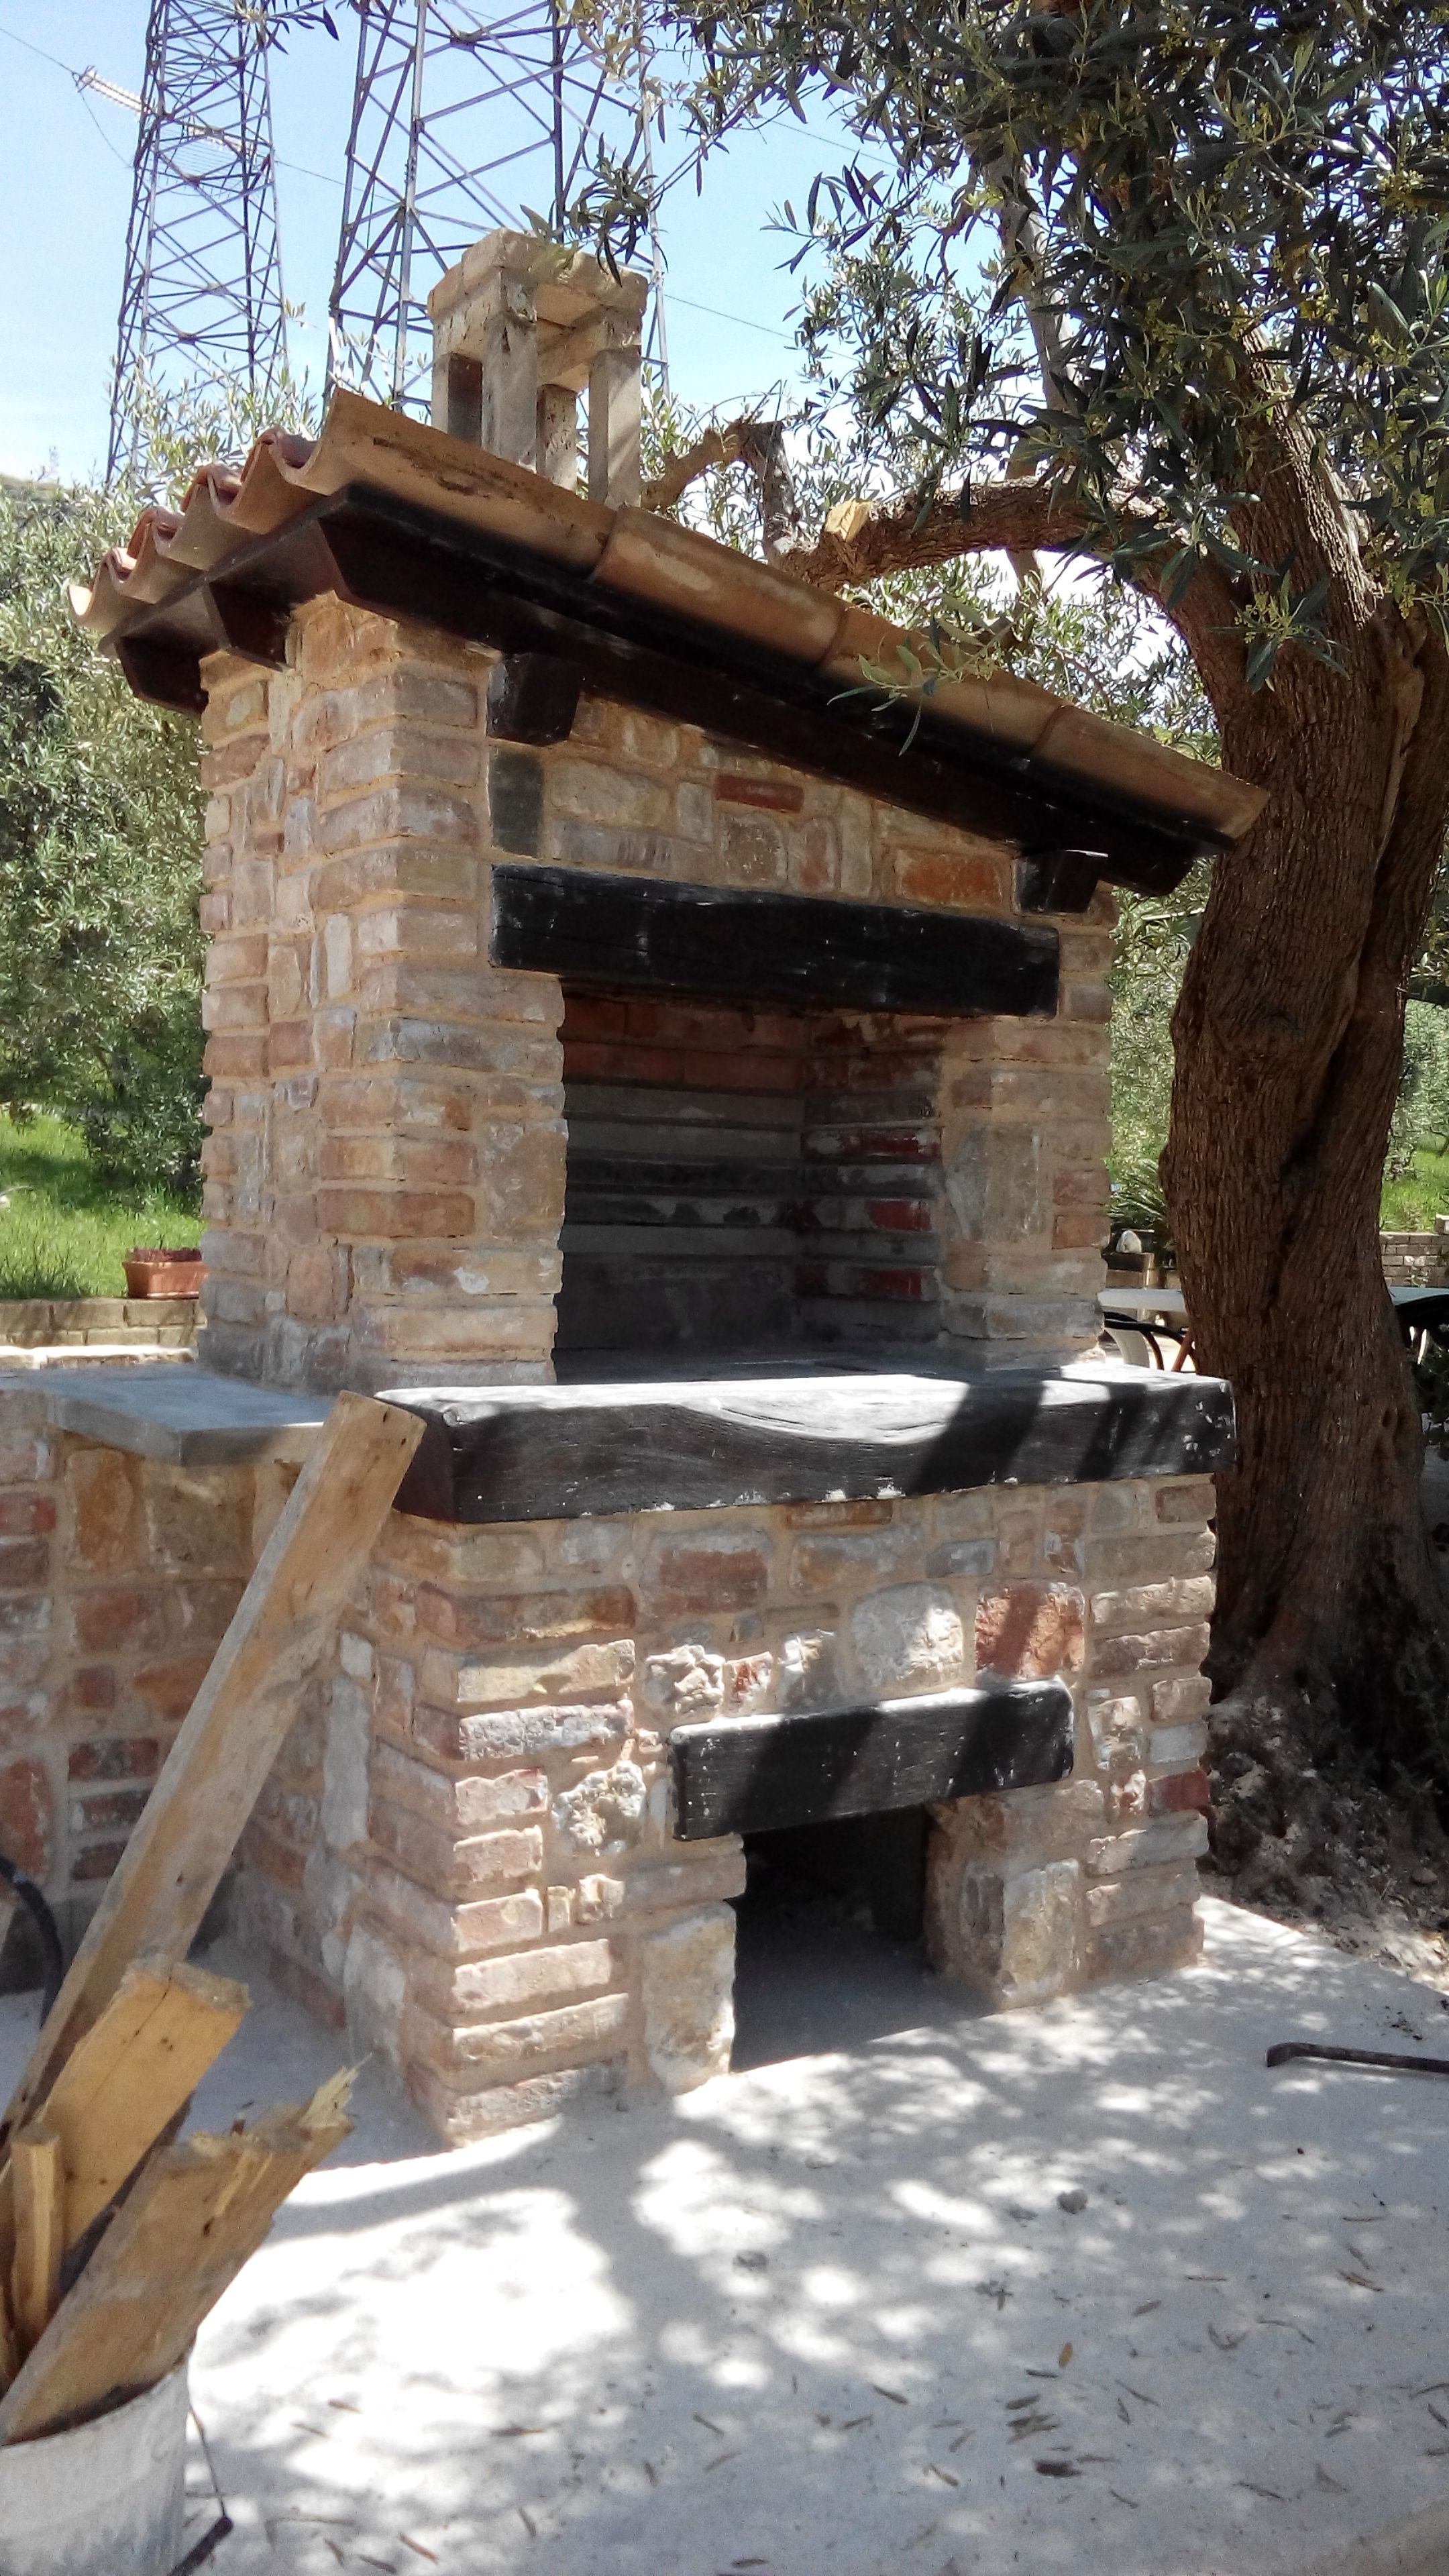 barbecue in muratura di pietra e mattoni | Barbecue | Pinterest ...